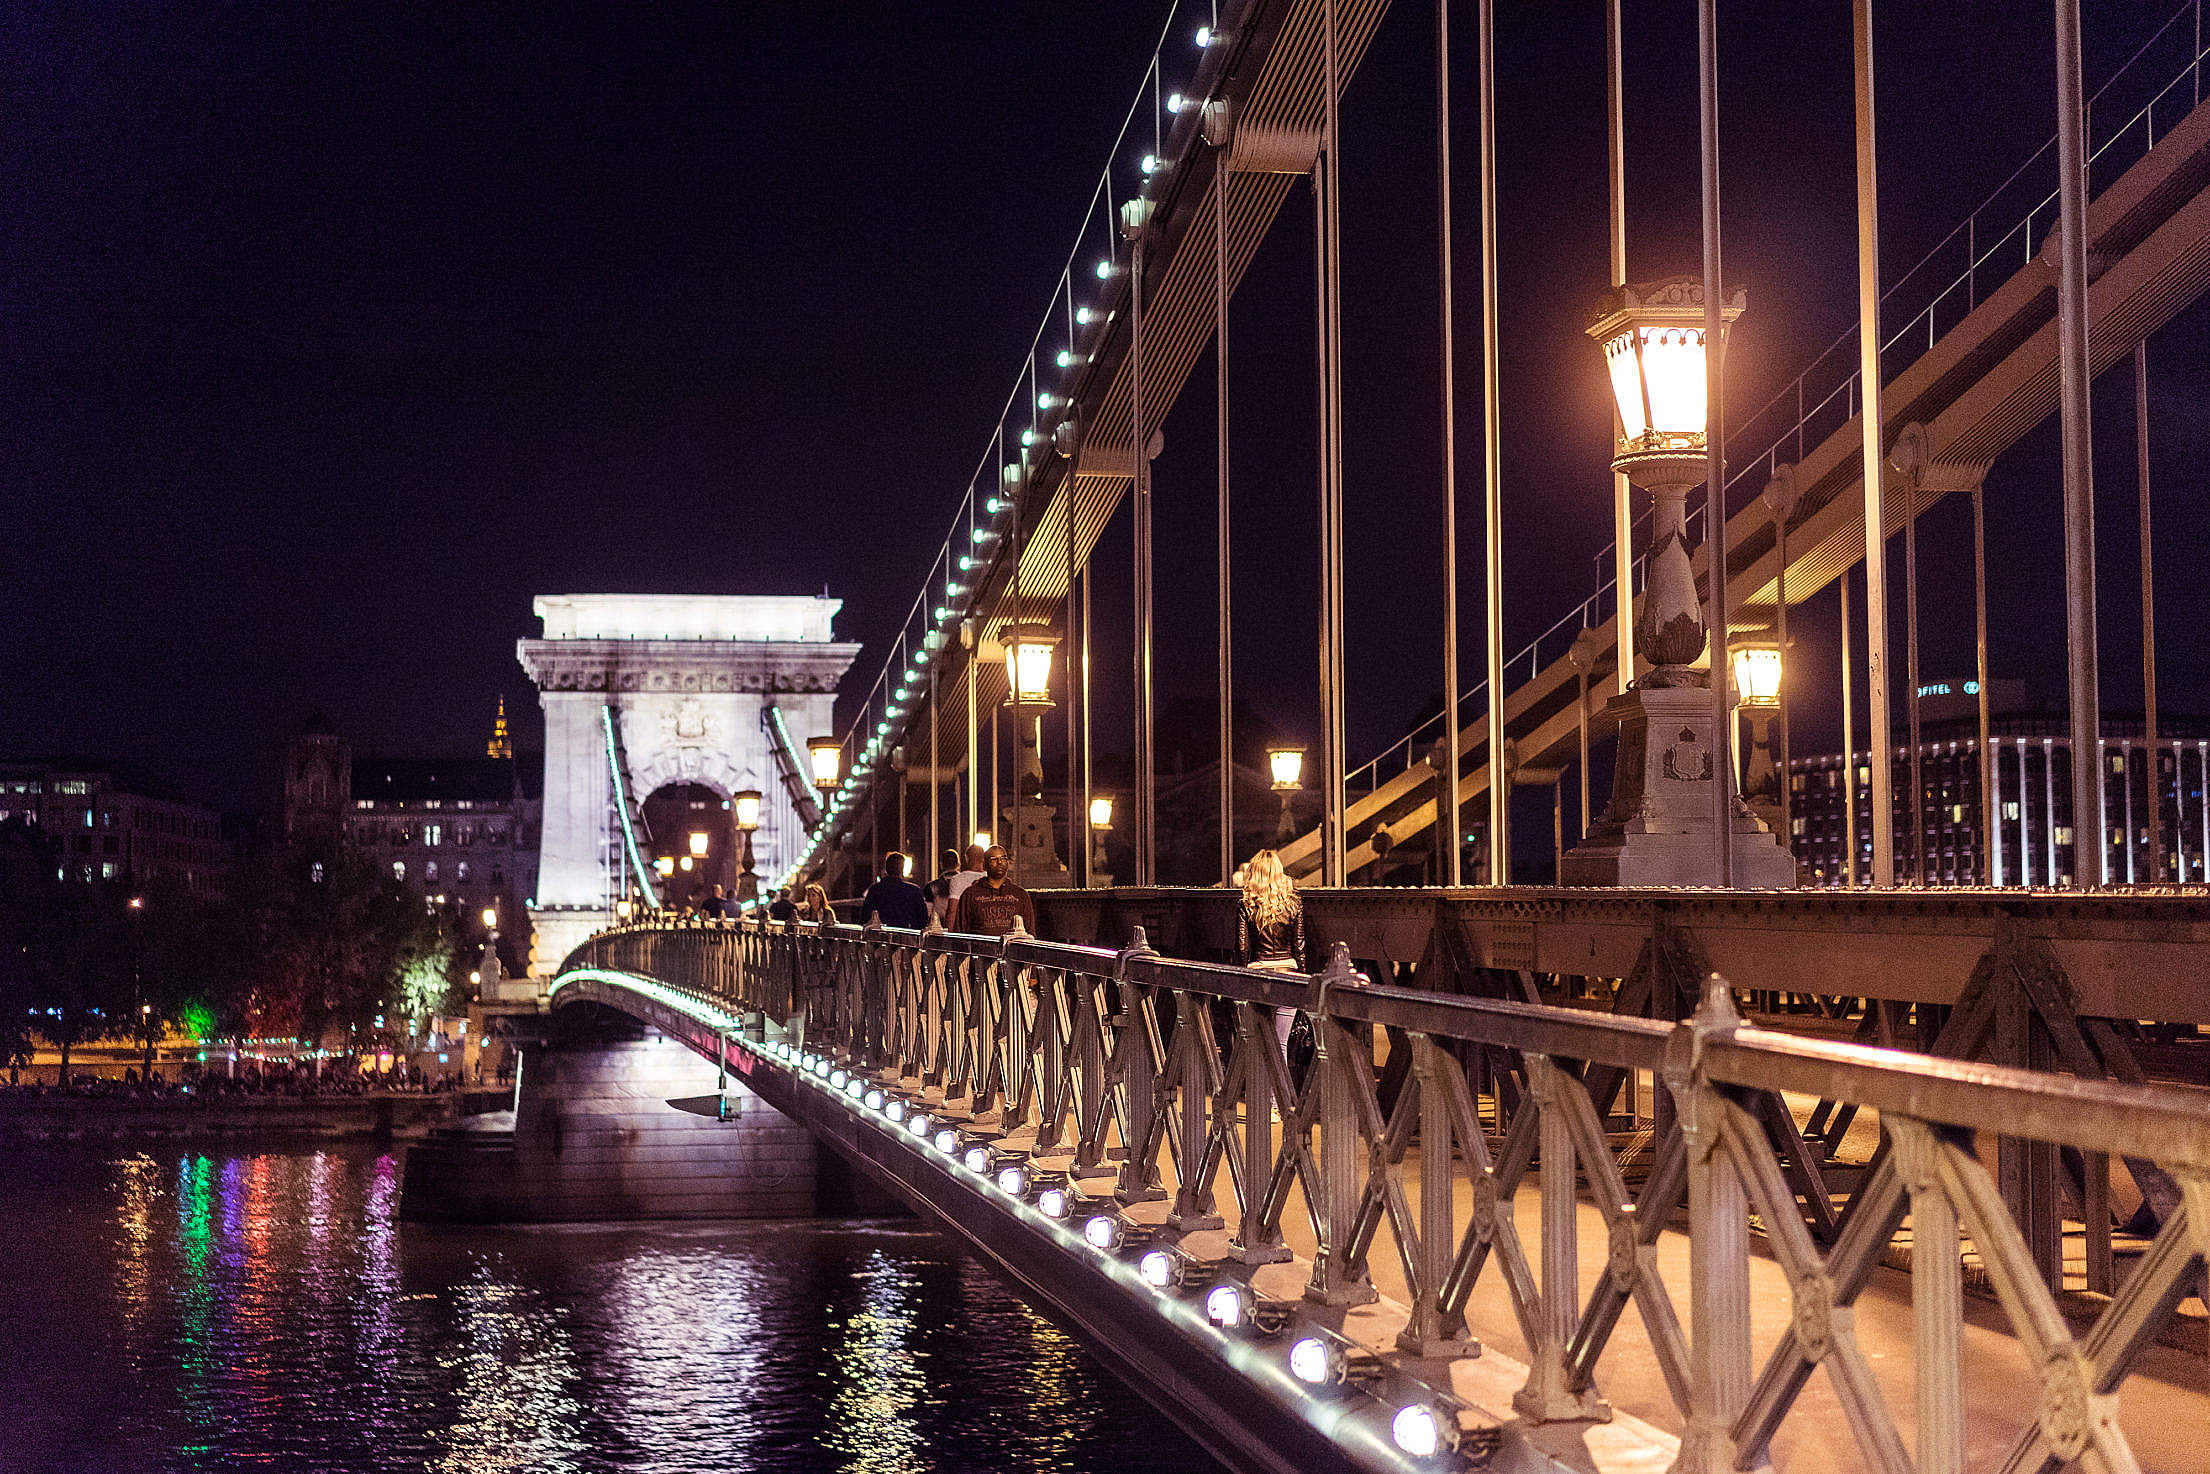 Széchenyi Chain Bridge in Budapest at Night Free Stock Photo